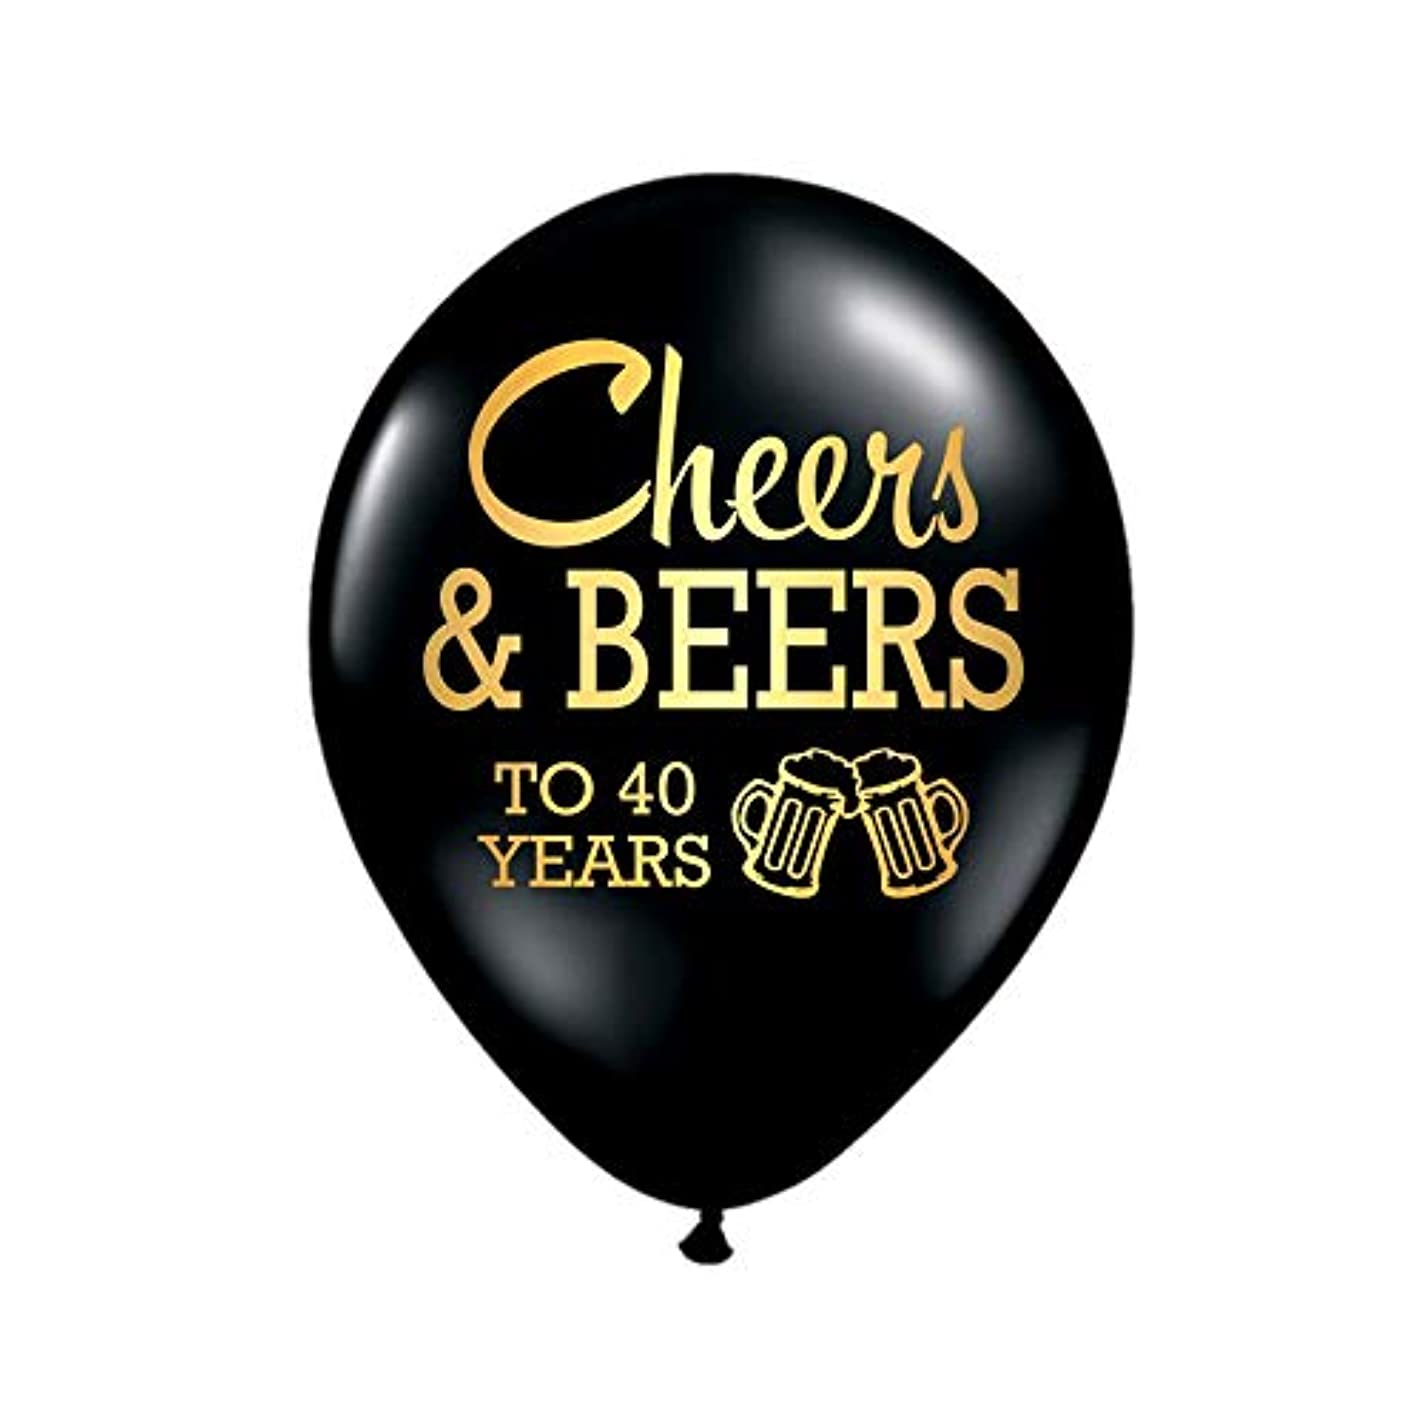 White Rabbits Design Cheers and Beers to 40 Years Balloons, 40th Birthday Party Balloons, Set of 3, 40th Birthday Party Decorations, 40th Birthday Ideas, Balloons, Metallic Gold and Black, Beers